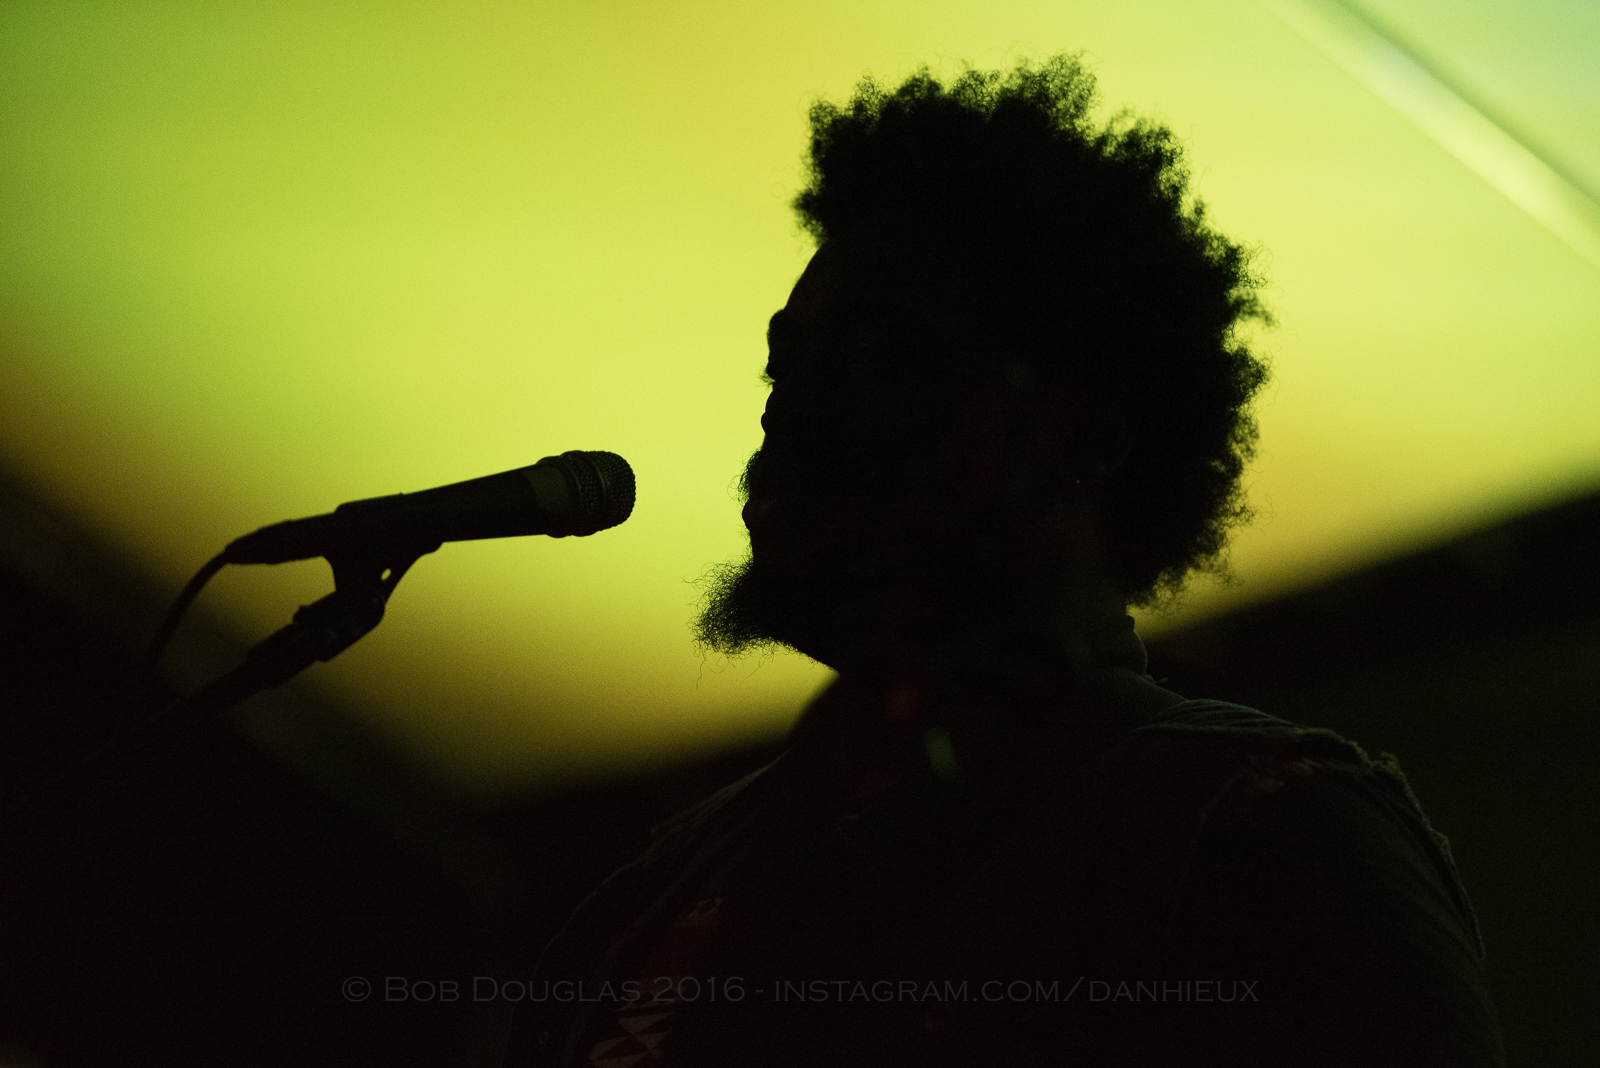 Silhouette of performer on stage.